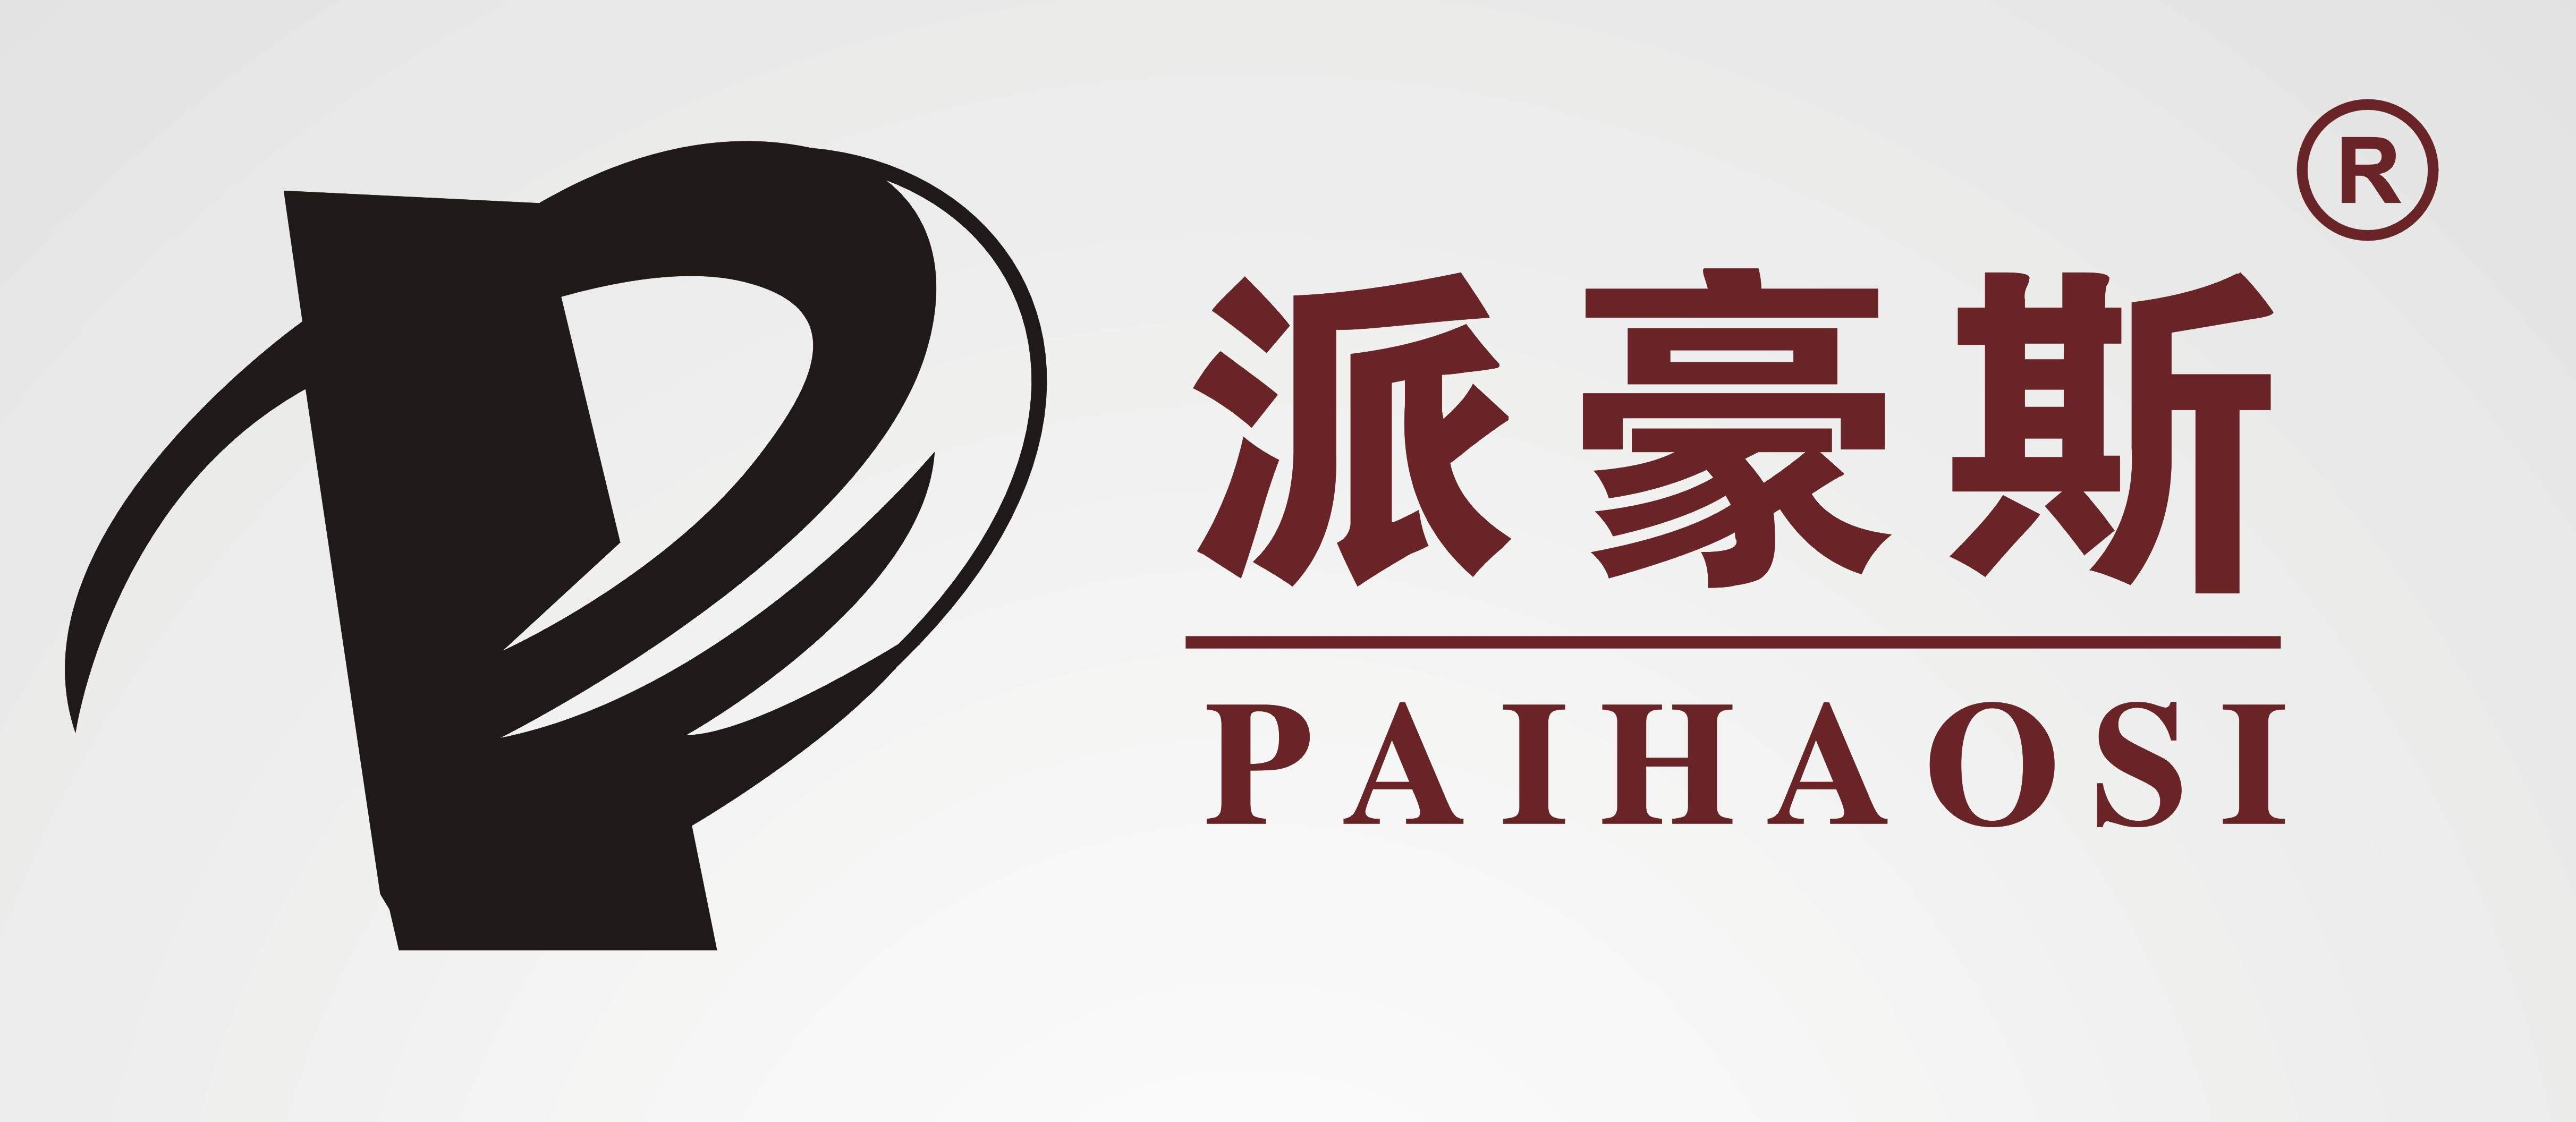 Guangdong Paihaosi Hardware Products Factory